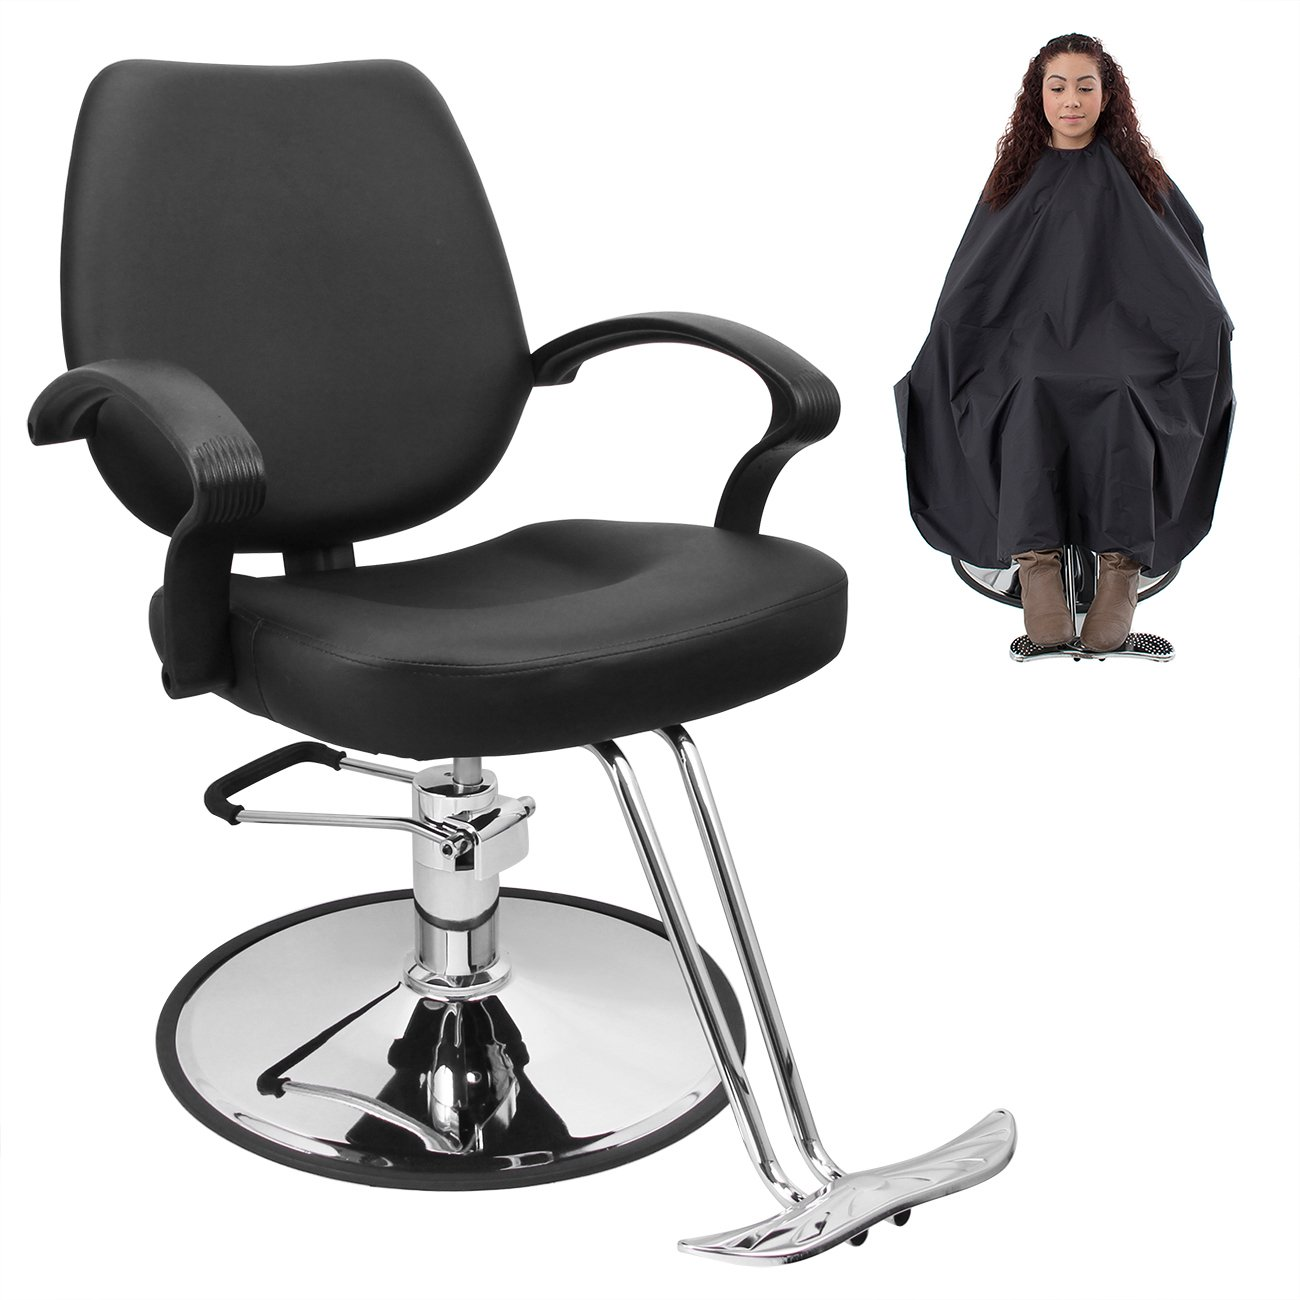 amazoncom bellavie classic hydraulic barber chair salon beauty spa hair styling black wbarber cape beauty - Barber Chairs For Sale